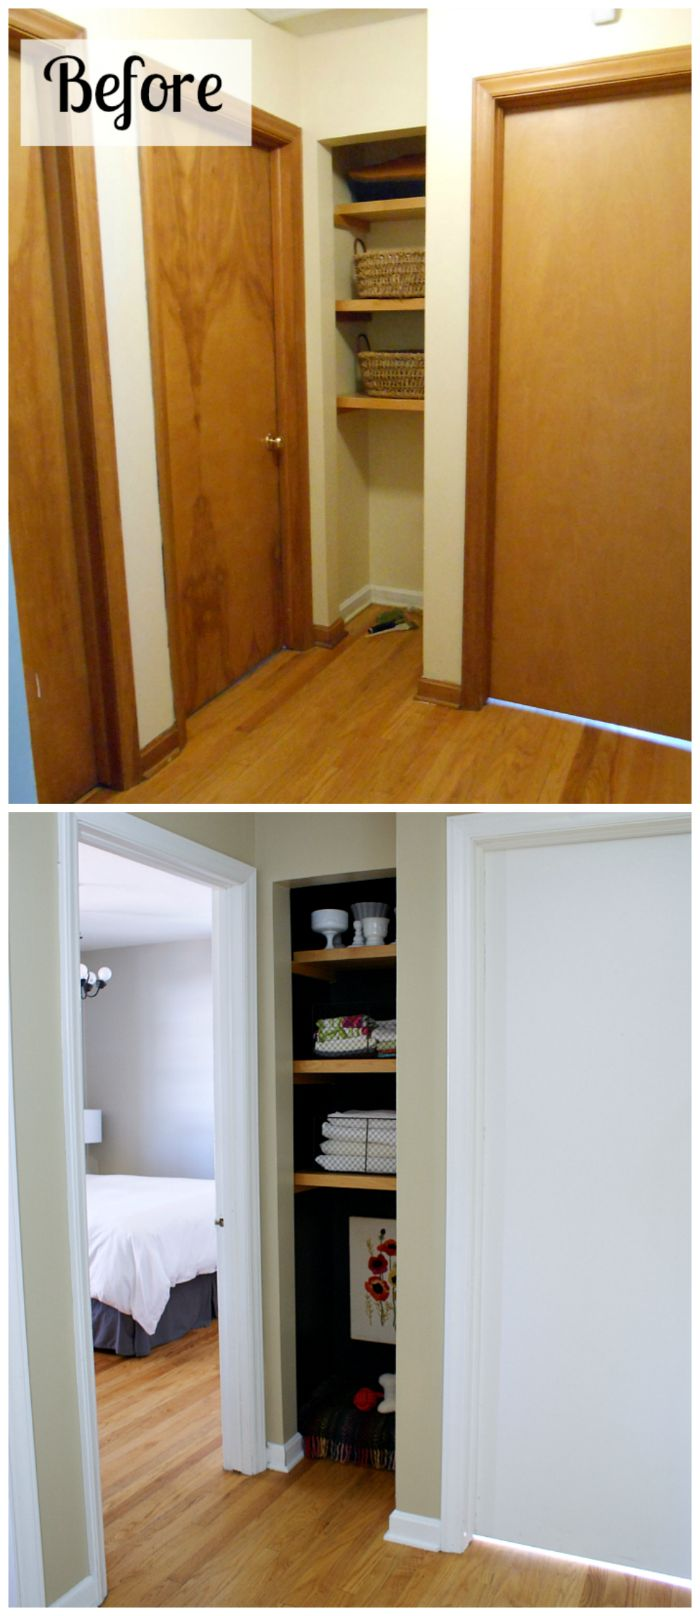 Before and after: A dated hallway gets an update with fresh paint and a black linen closet / dog bed nook. #dogbed #linencloset #black